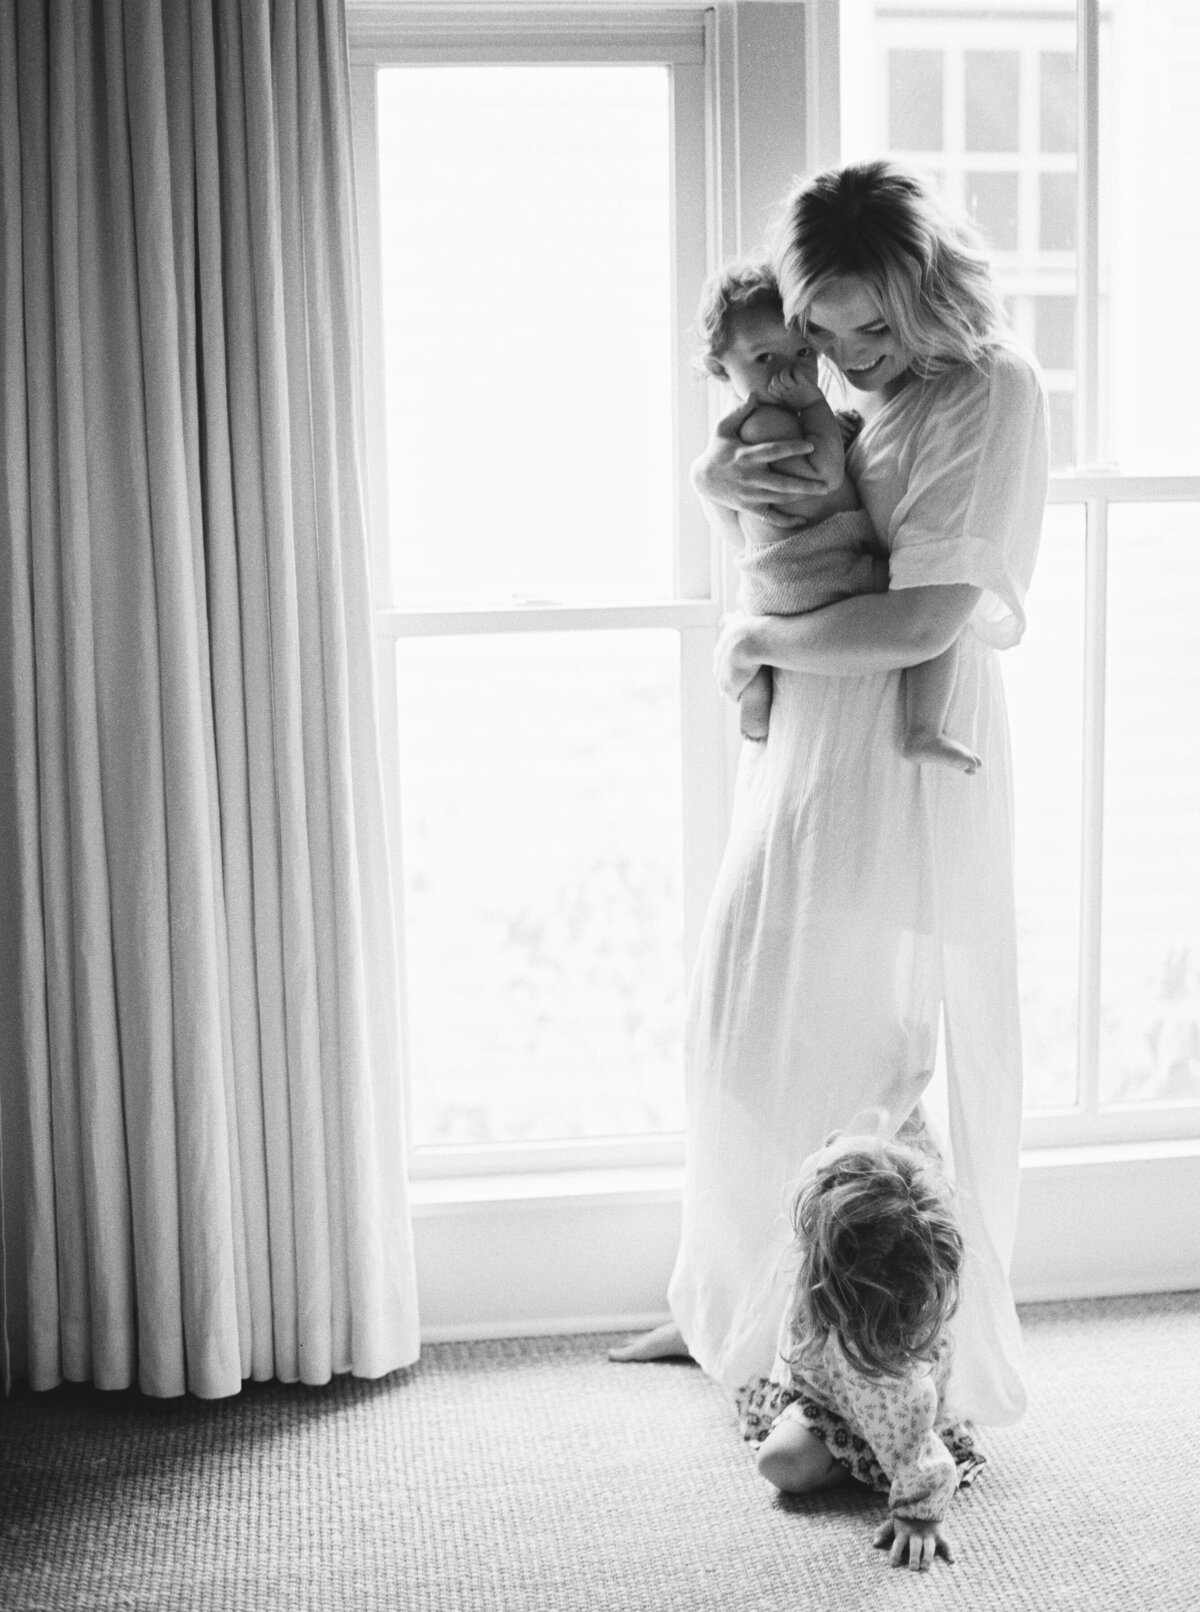 Motherhood-photography-session-fount-melanie-gabrielle-33